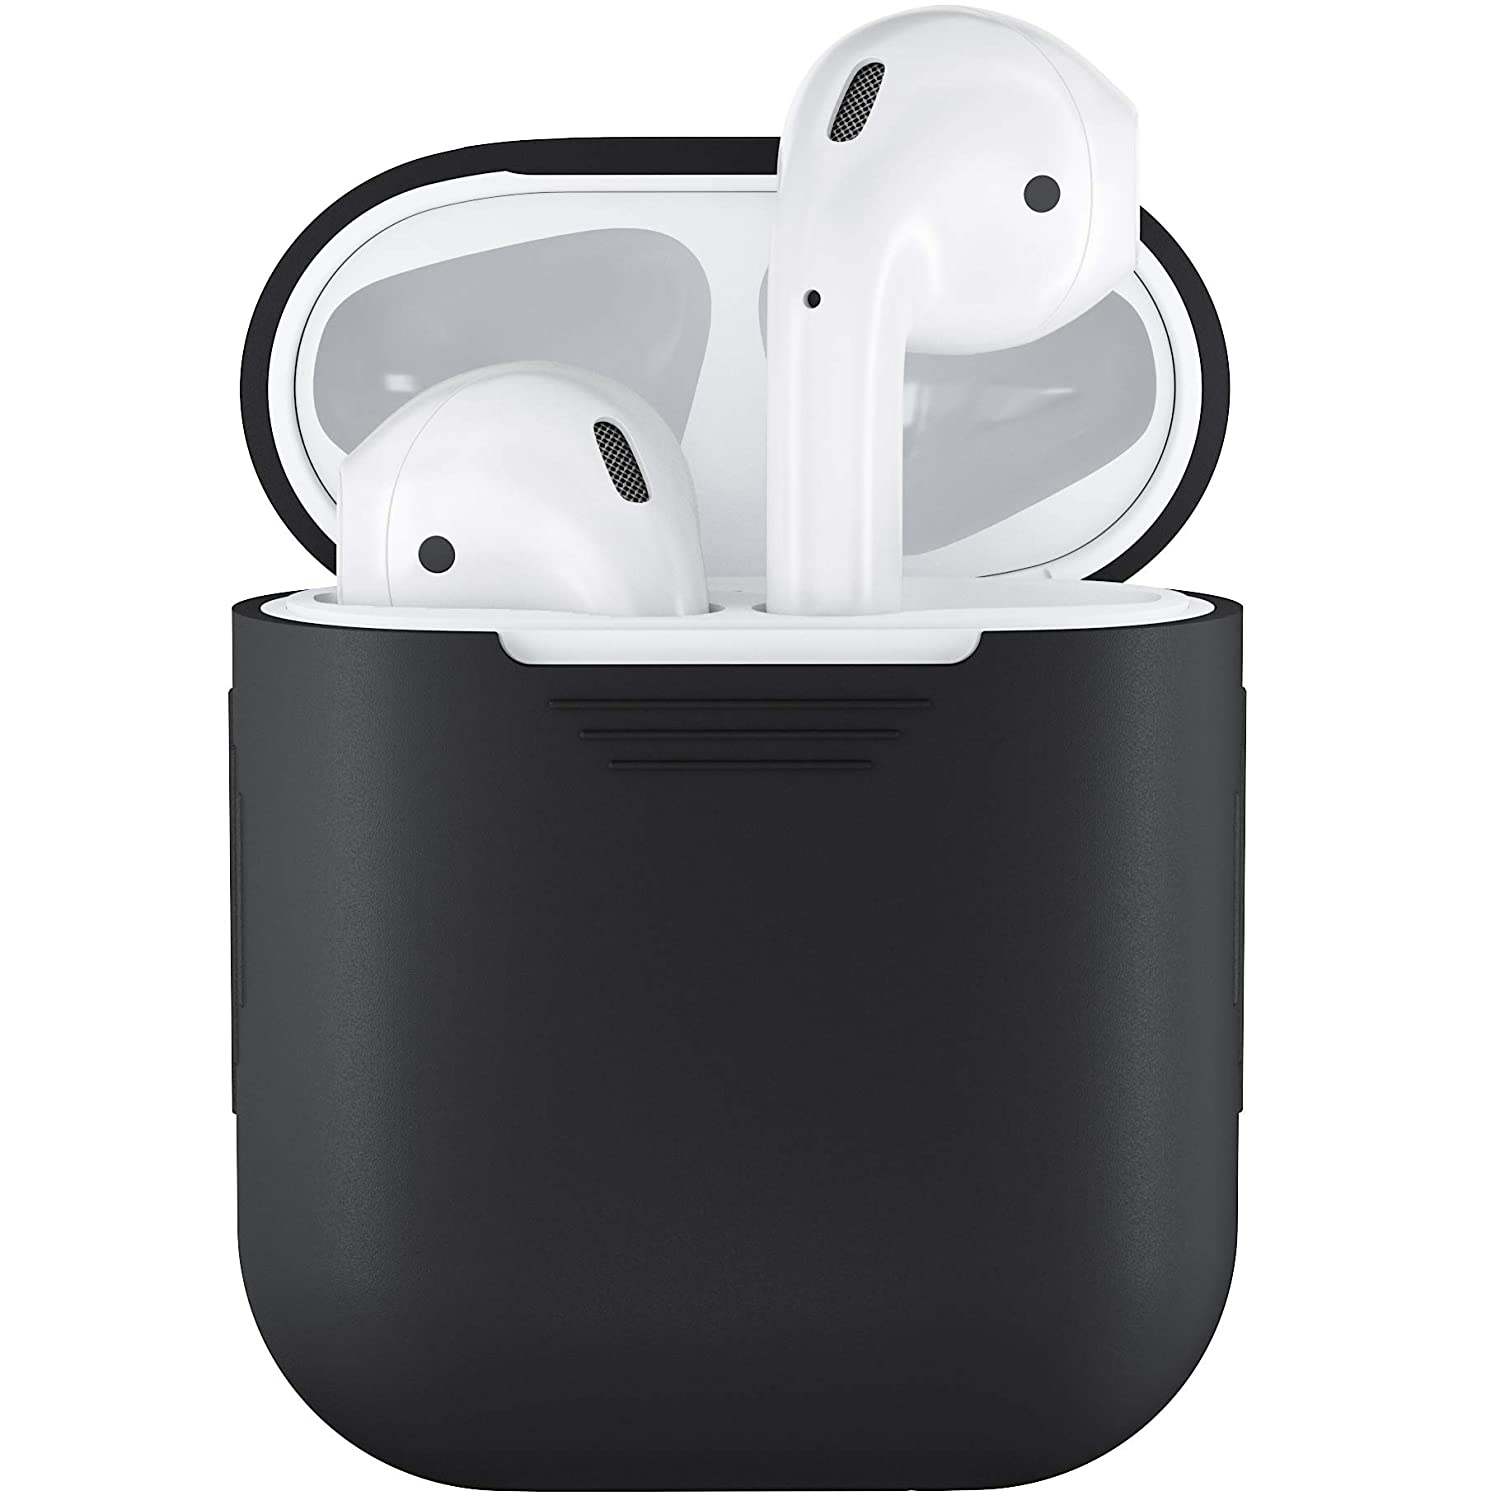 c094990b8ab Amazon.com: PodSkinz AirPods Case Protective Silicone Cover and Skin  Compatible with Apple Airpods 1 & AirPods 2 [Front LED Not Visible]  (Black): ...